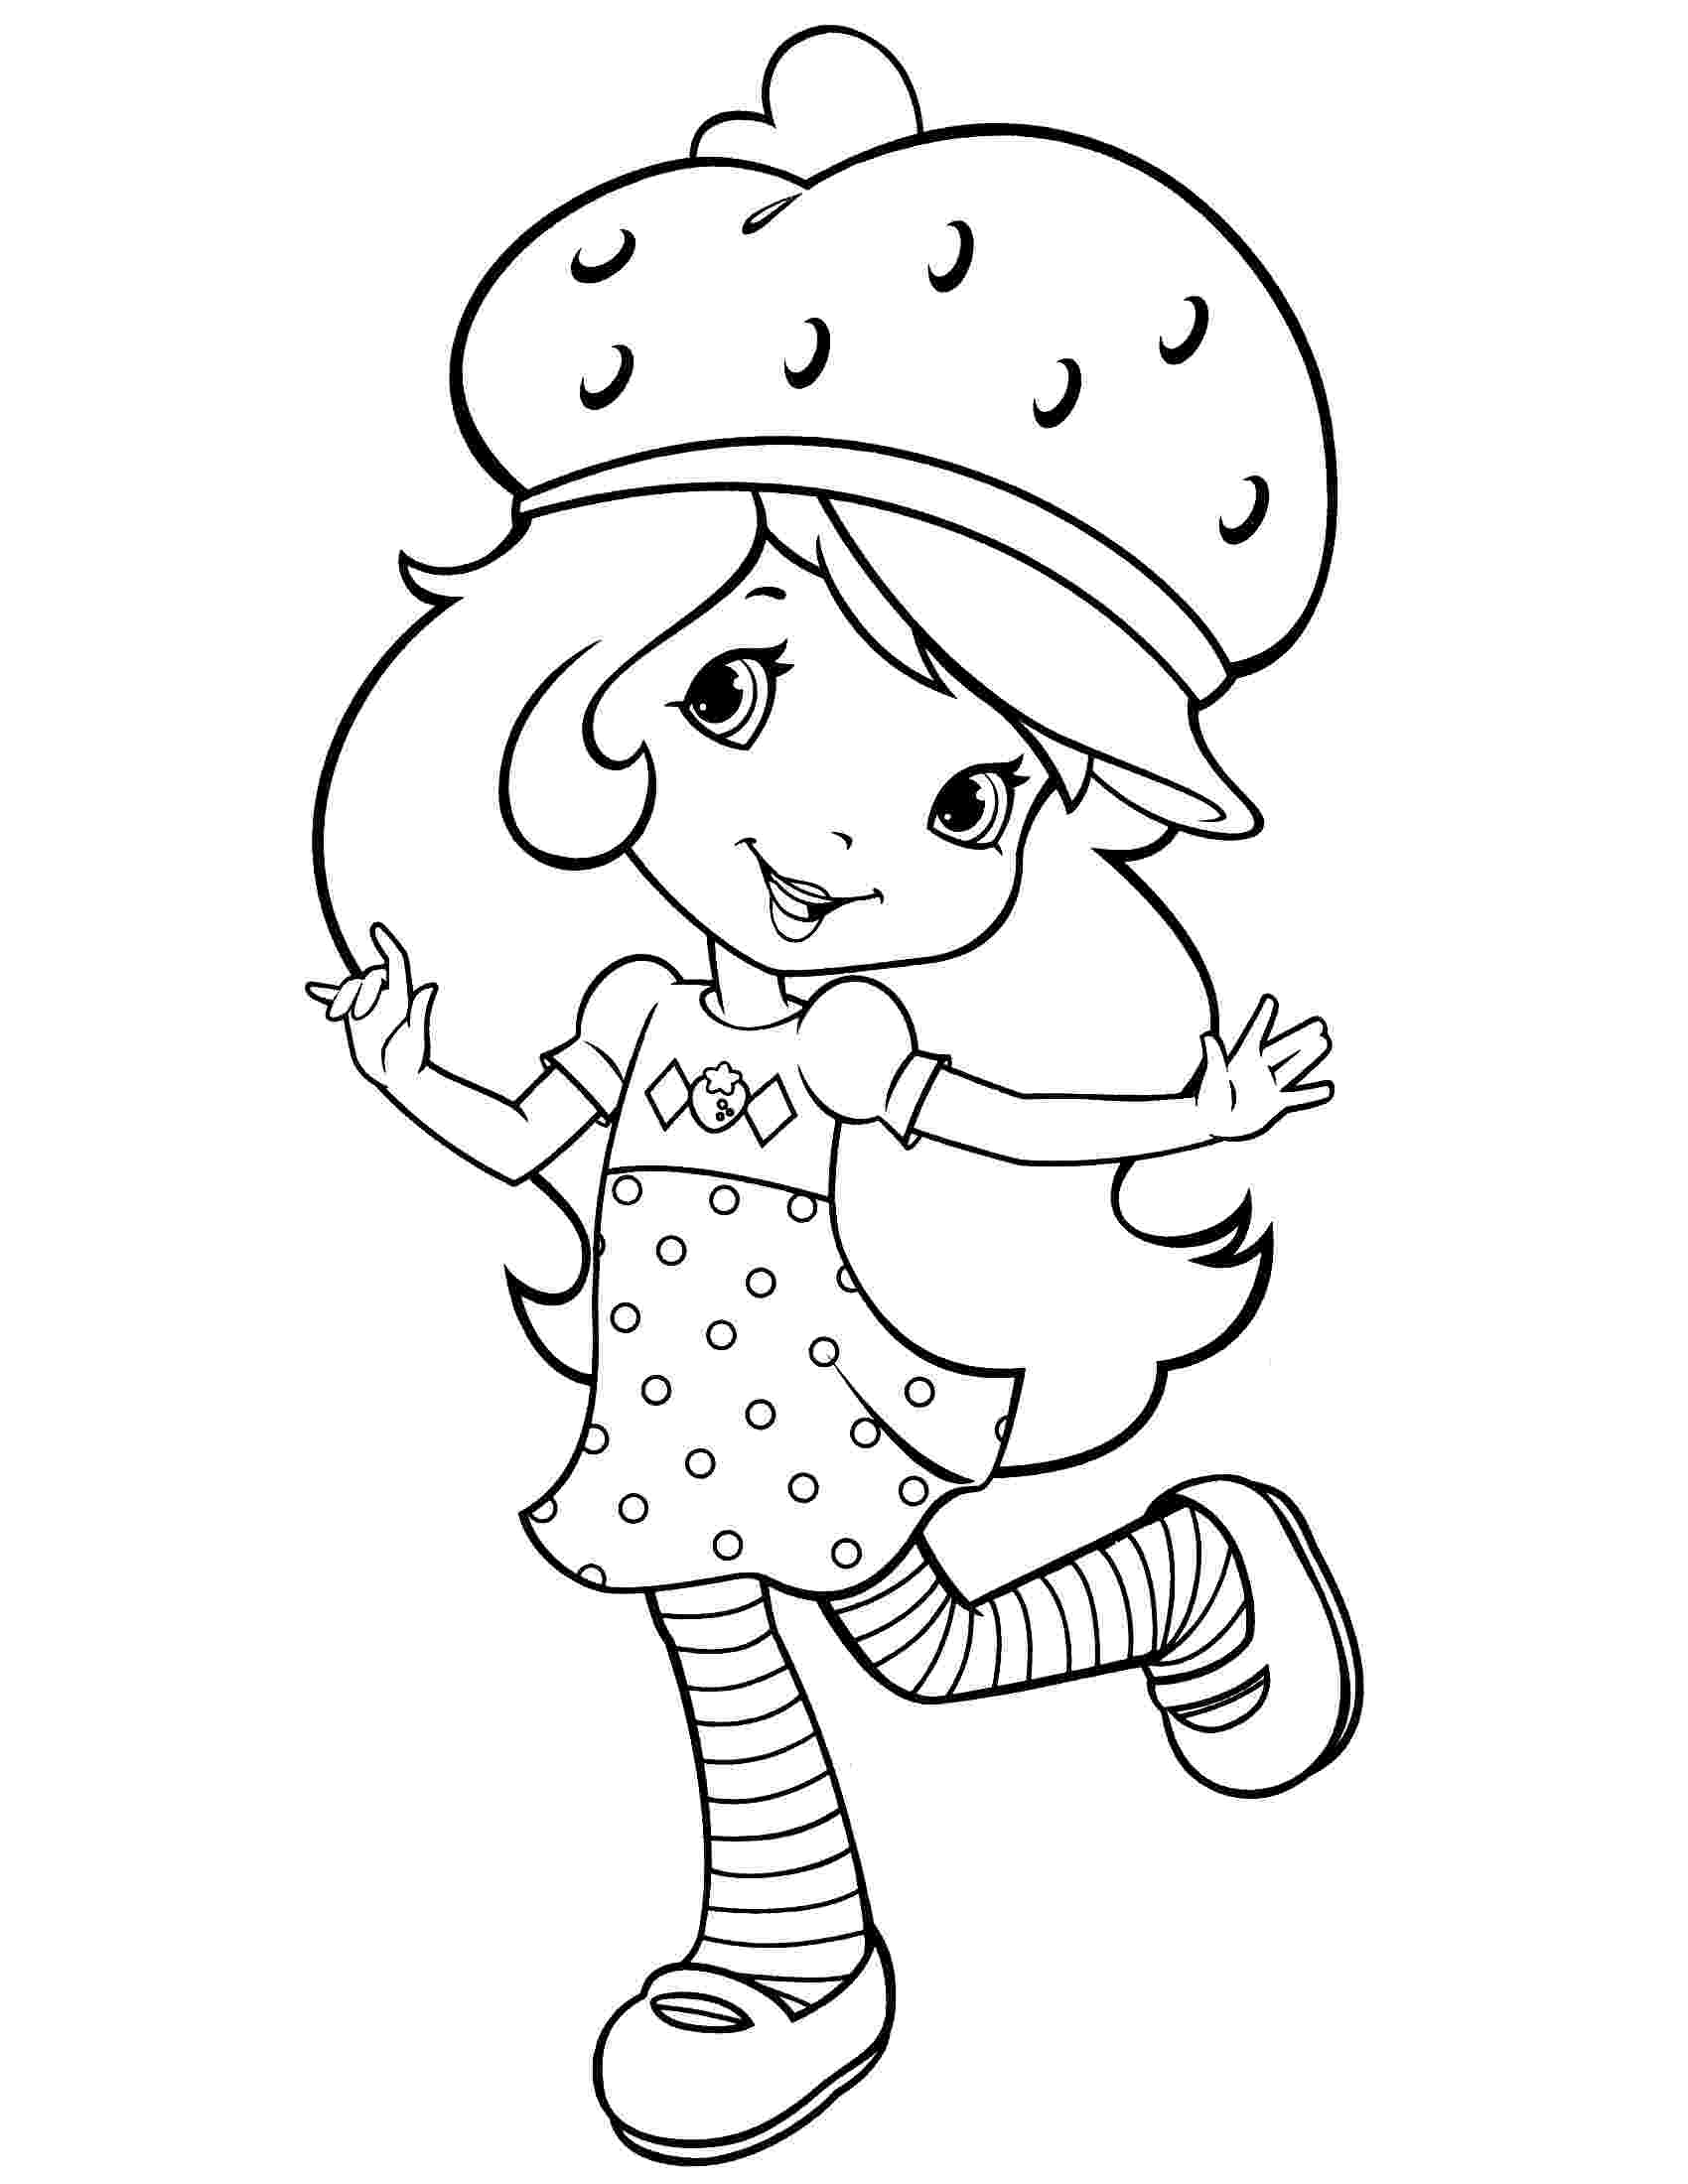 strawberry shortcake coloring pages free strawberry coloring pages best coloring pages for kids free pages strawberry coloring shortcake